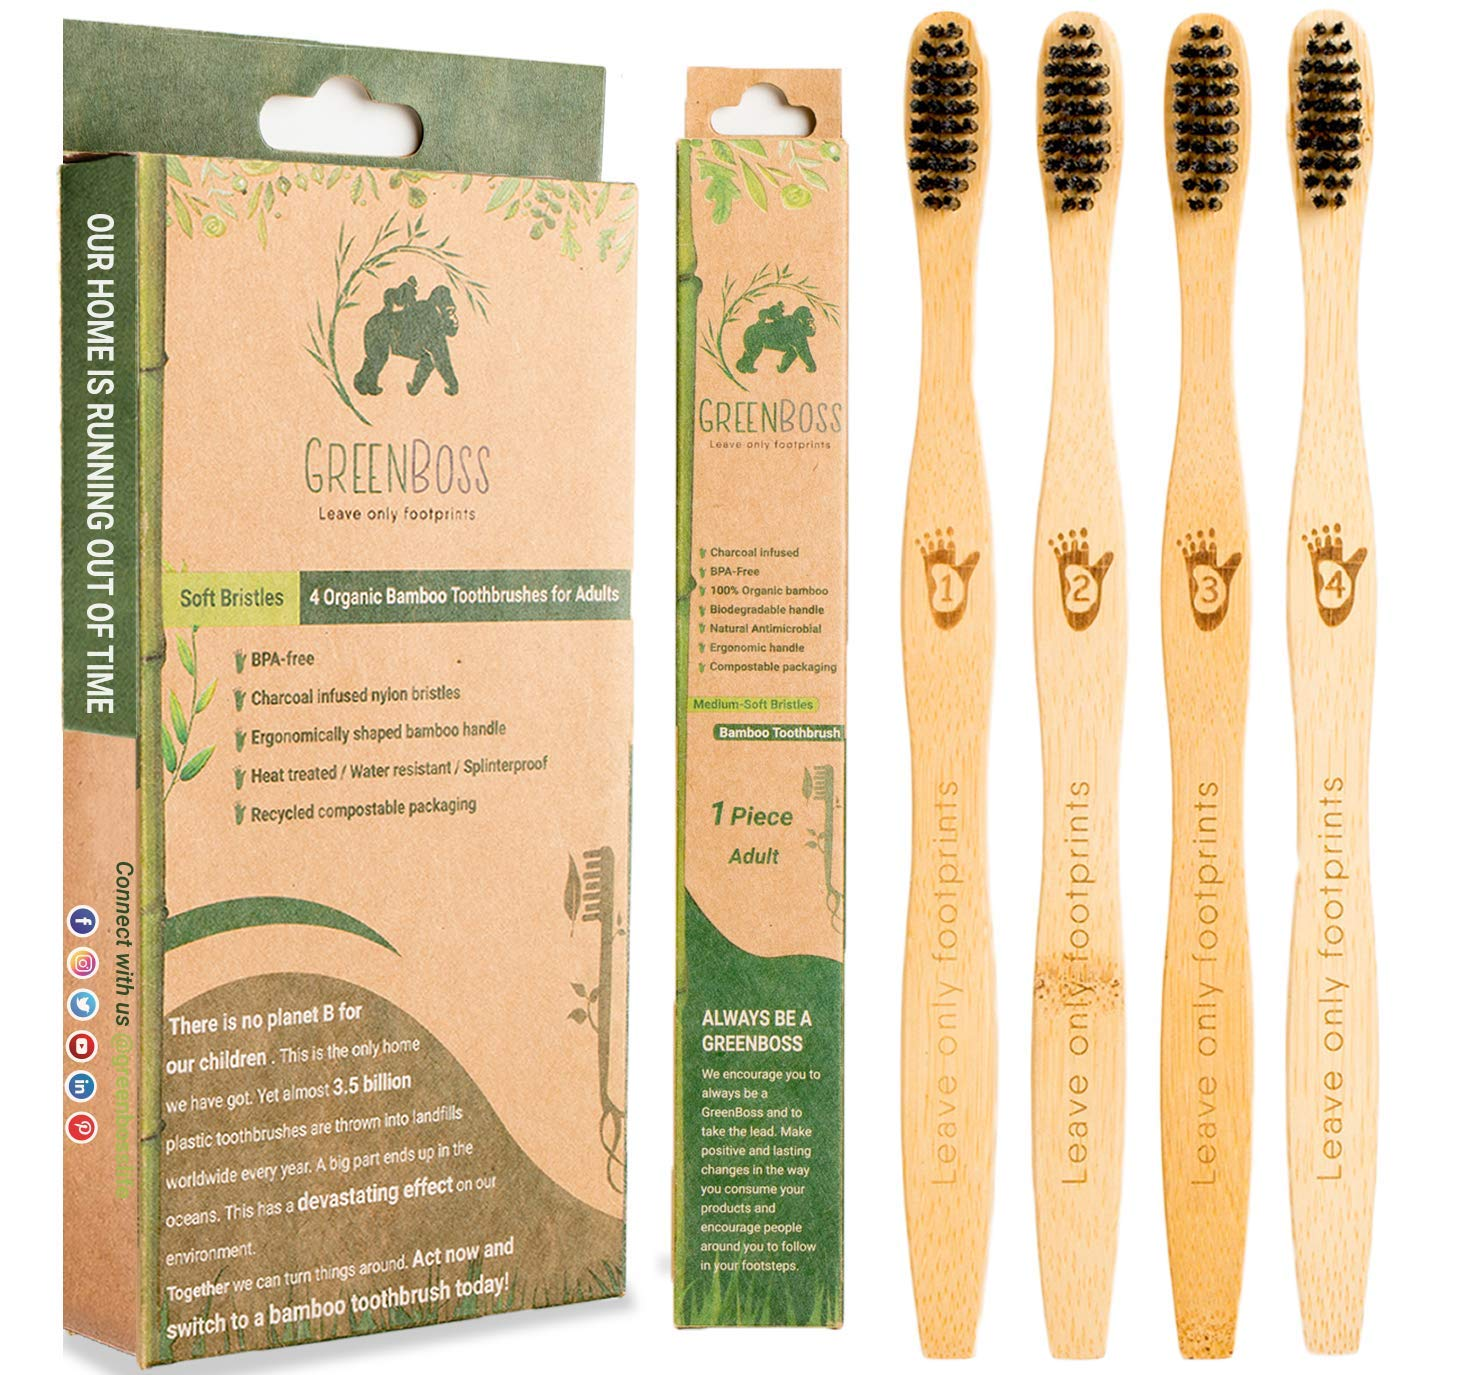 GreenBoss Bamboo Toothbrush with Charcoal Infused Bristles (Medium-Soft)   Pack of 4 Eco-friendly, 100% Organic and Biodegradable Toothbrushes for Adults (Adult 4 Pack)